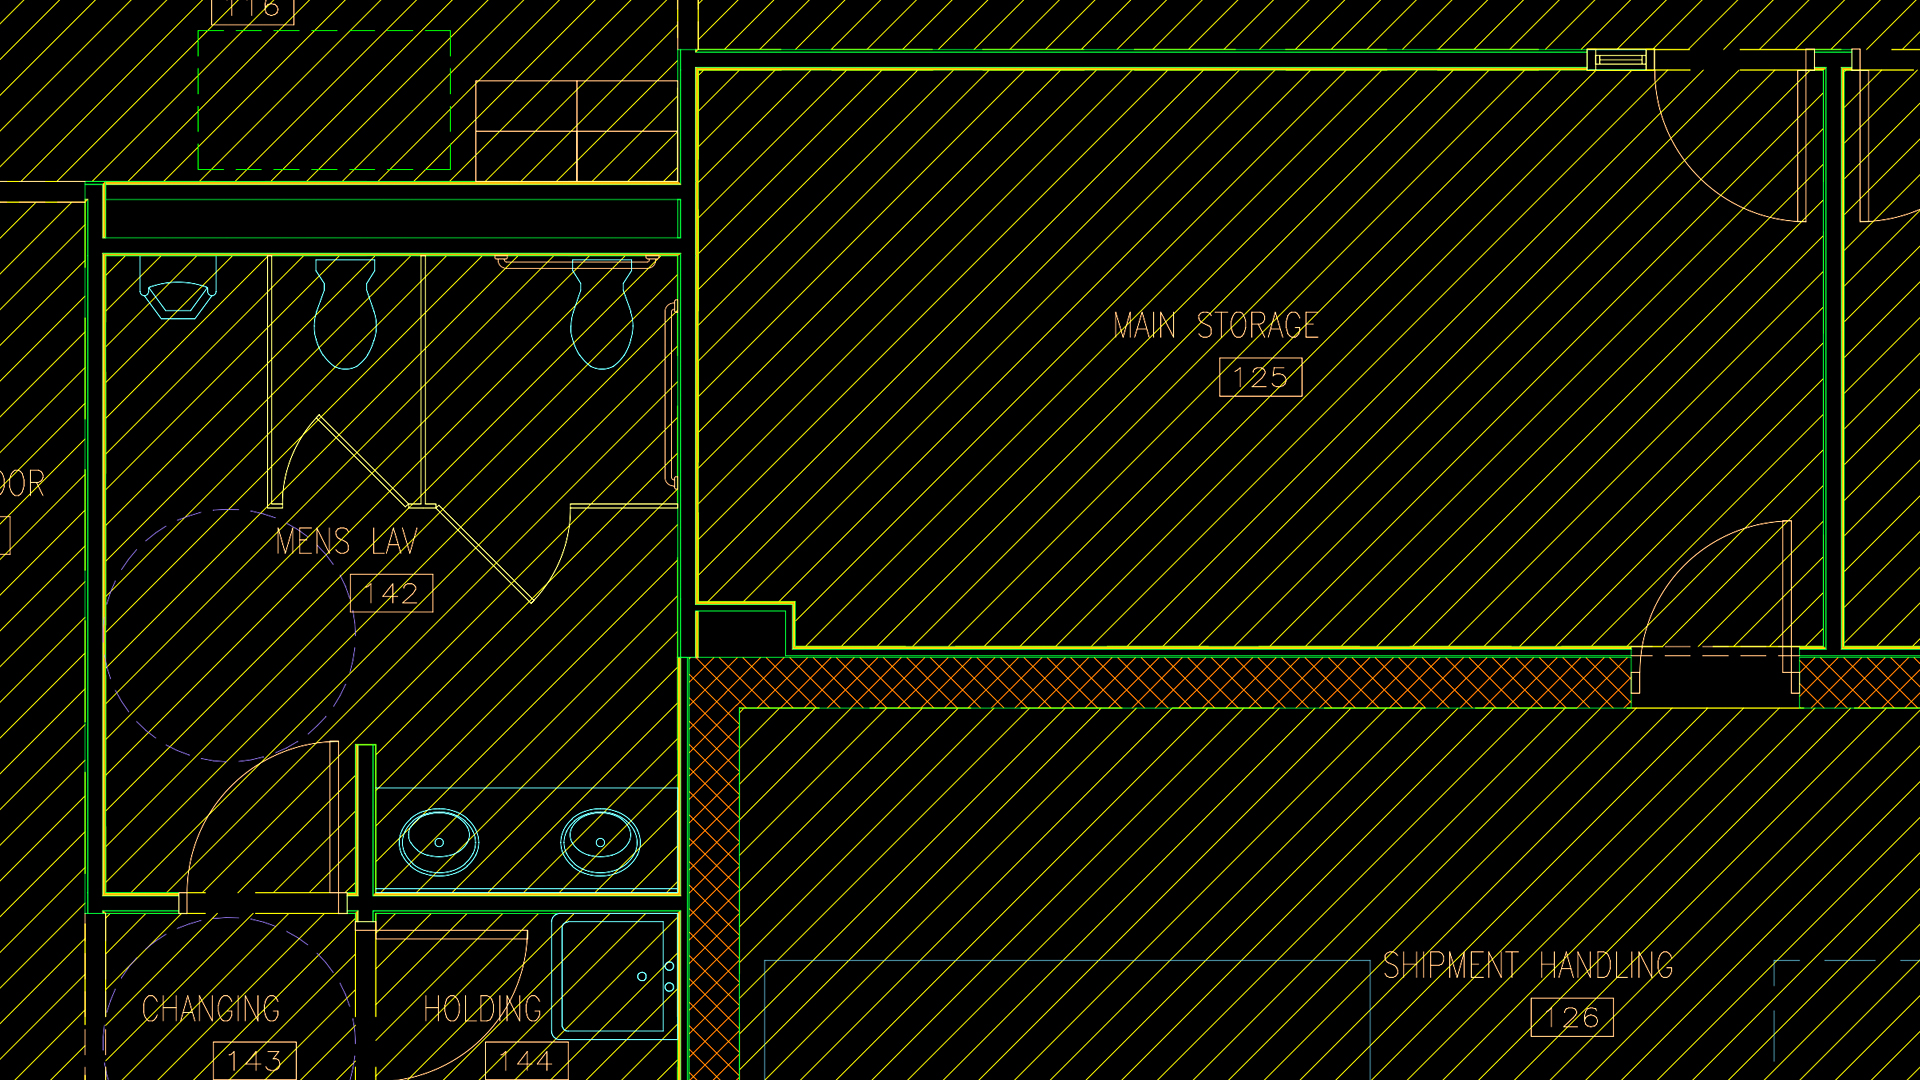 hight resolution of hvac drawing freeware